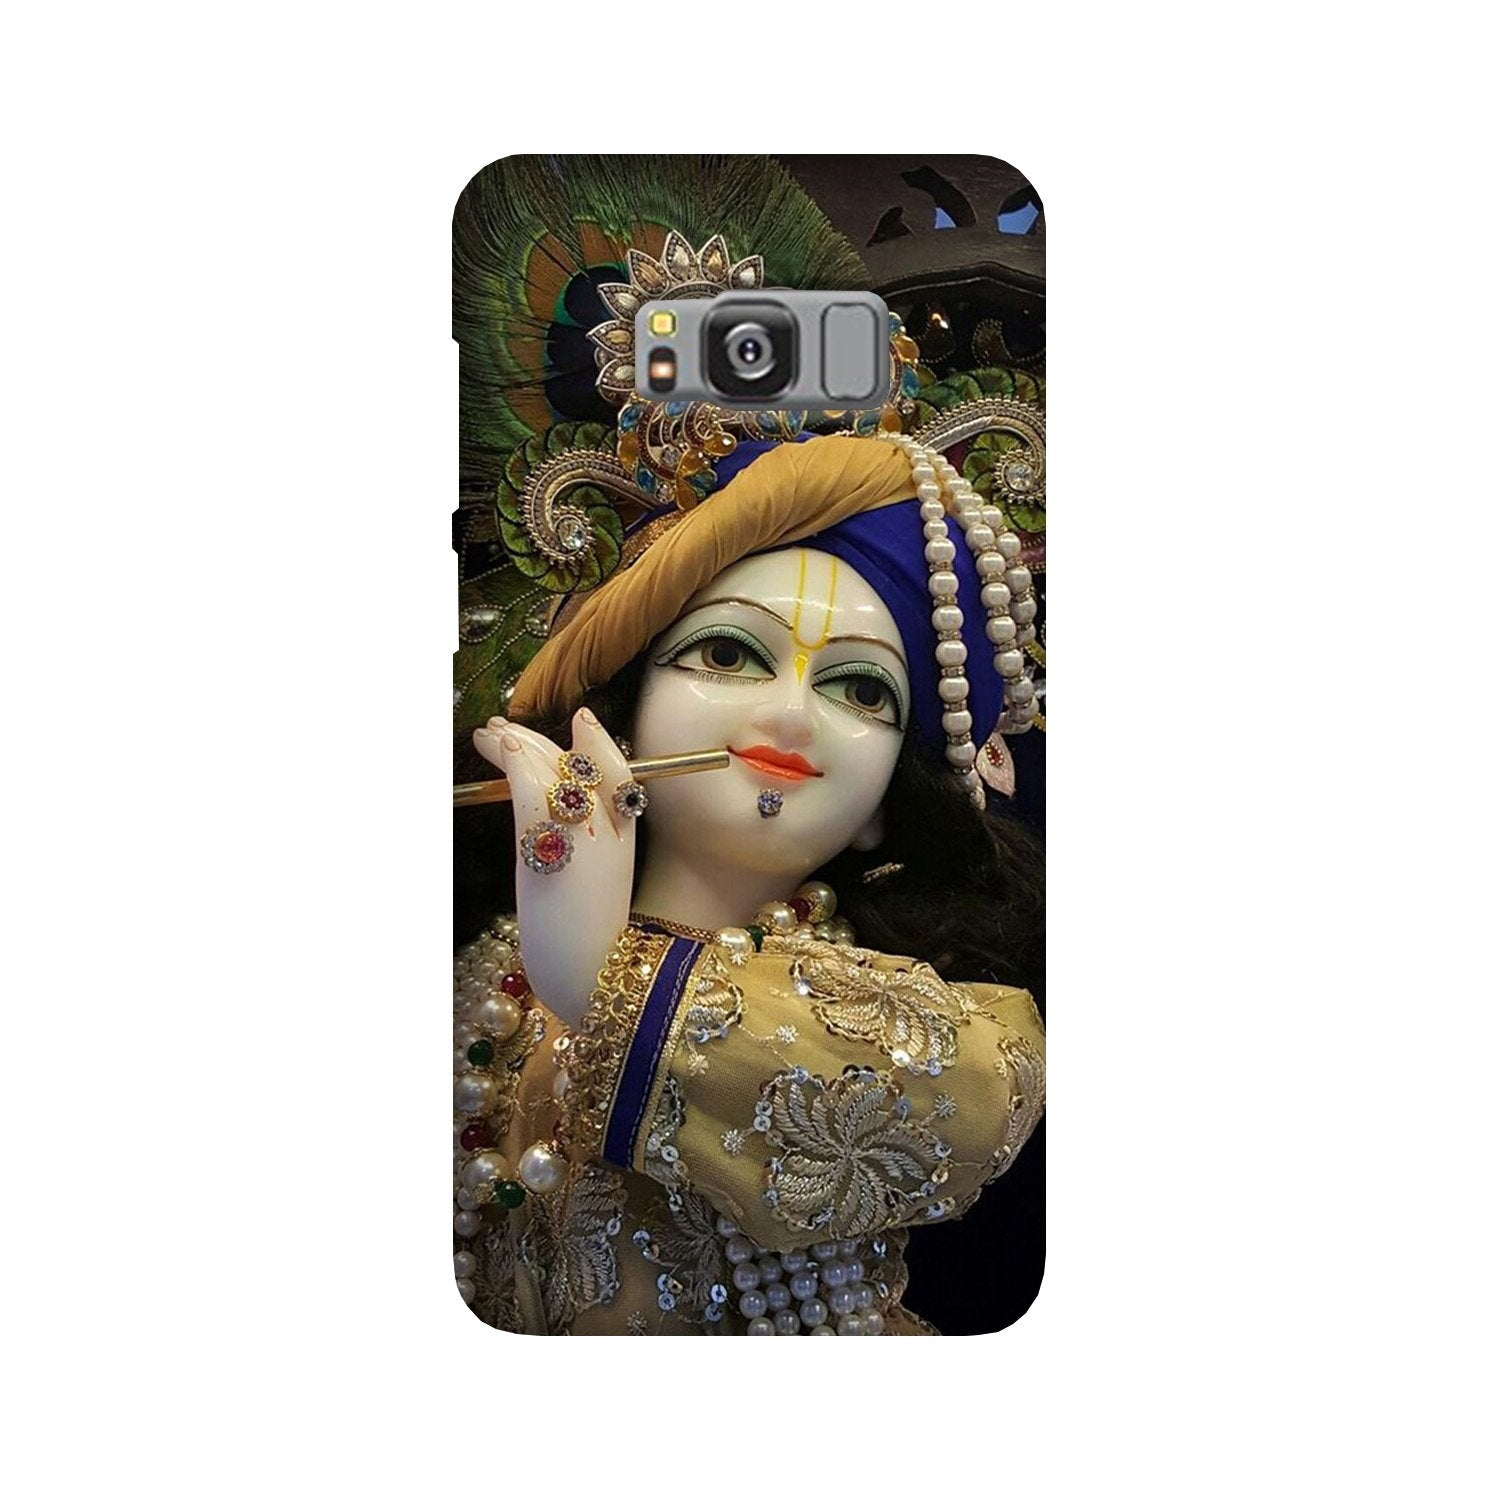 Lord Krishna3 Case for Galaxy S8 Plus